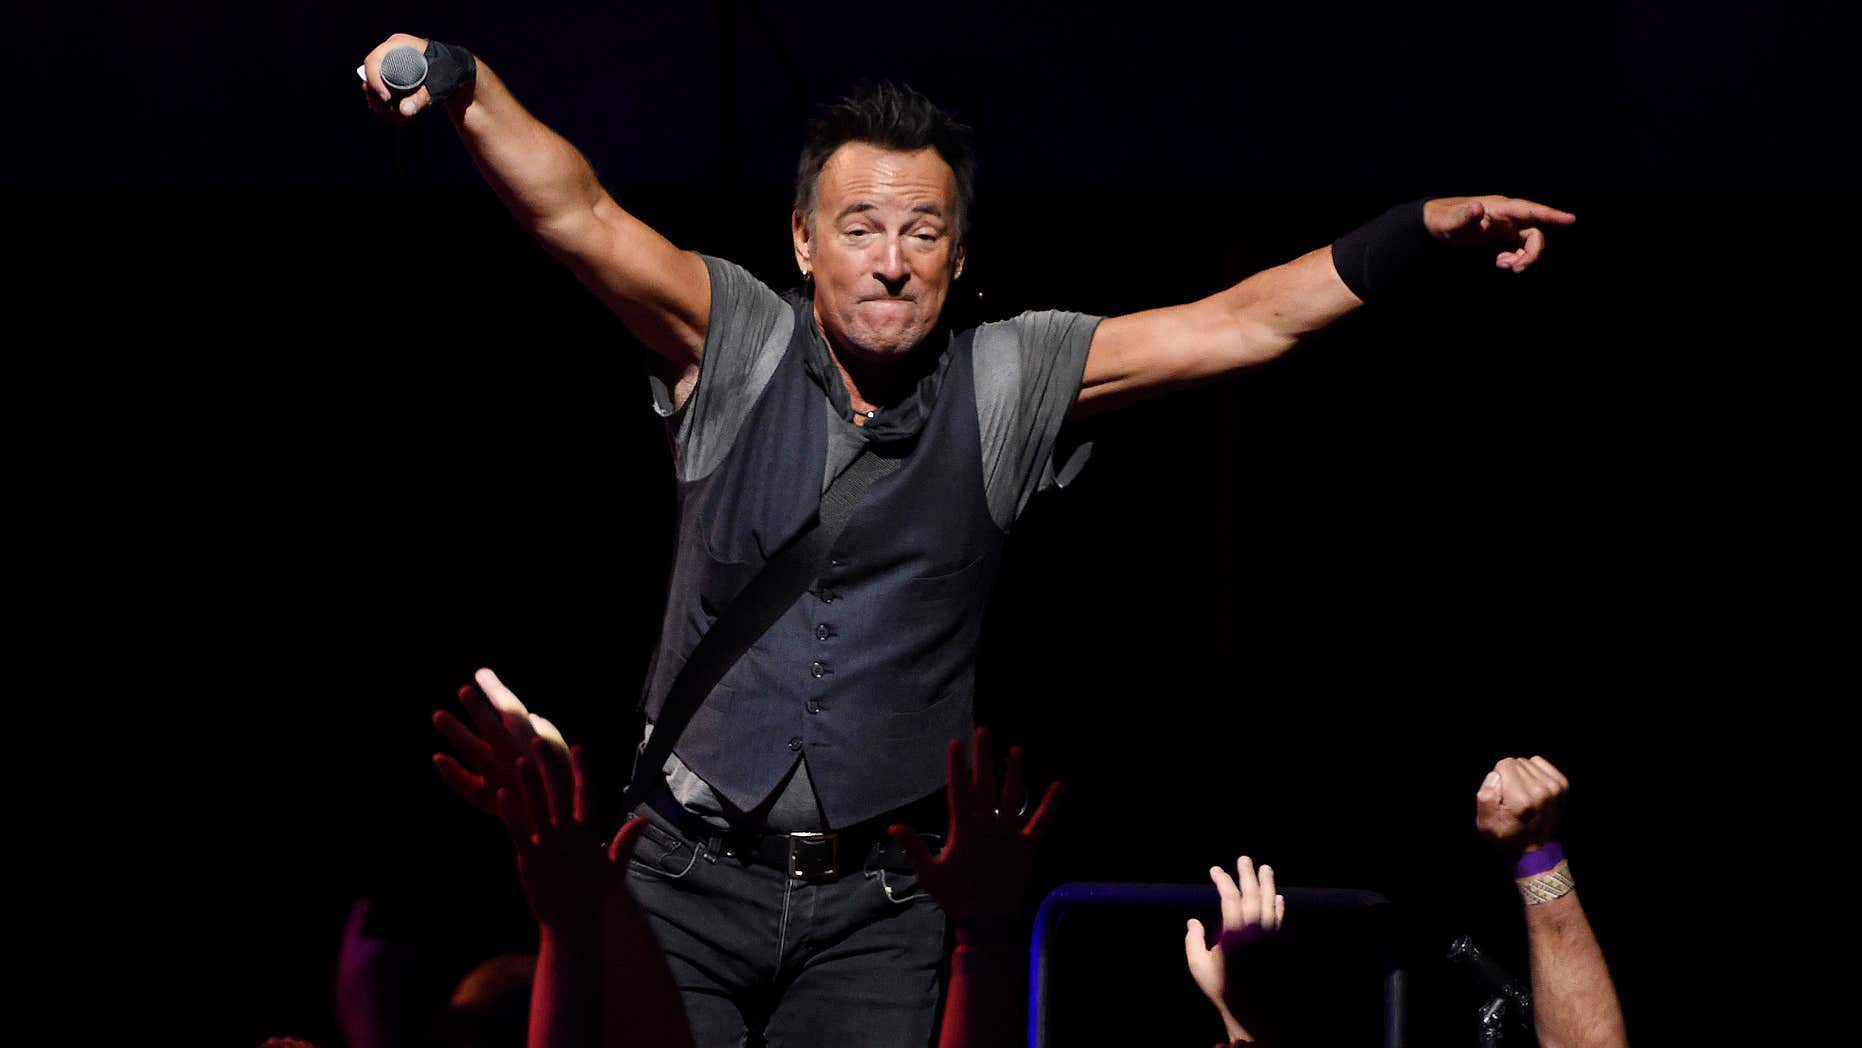 Bruce Springsteen interacts with the crowd during his concert with the E Street Band at the Los Angeles Sports Arena on Tuesday, March 15, 2016, in Los Angeles.